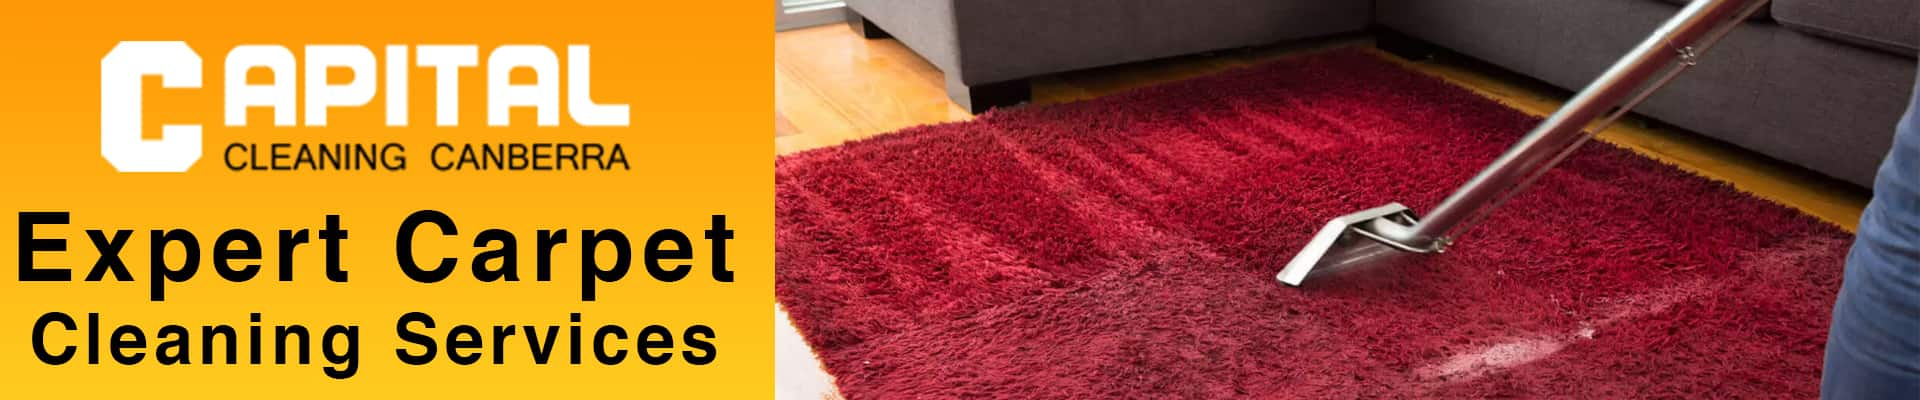 Expert Carpet Cleaning Services Cavan